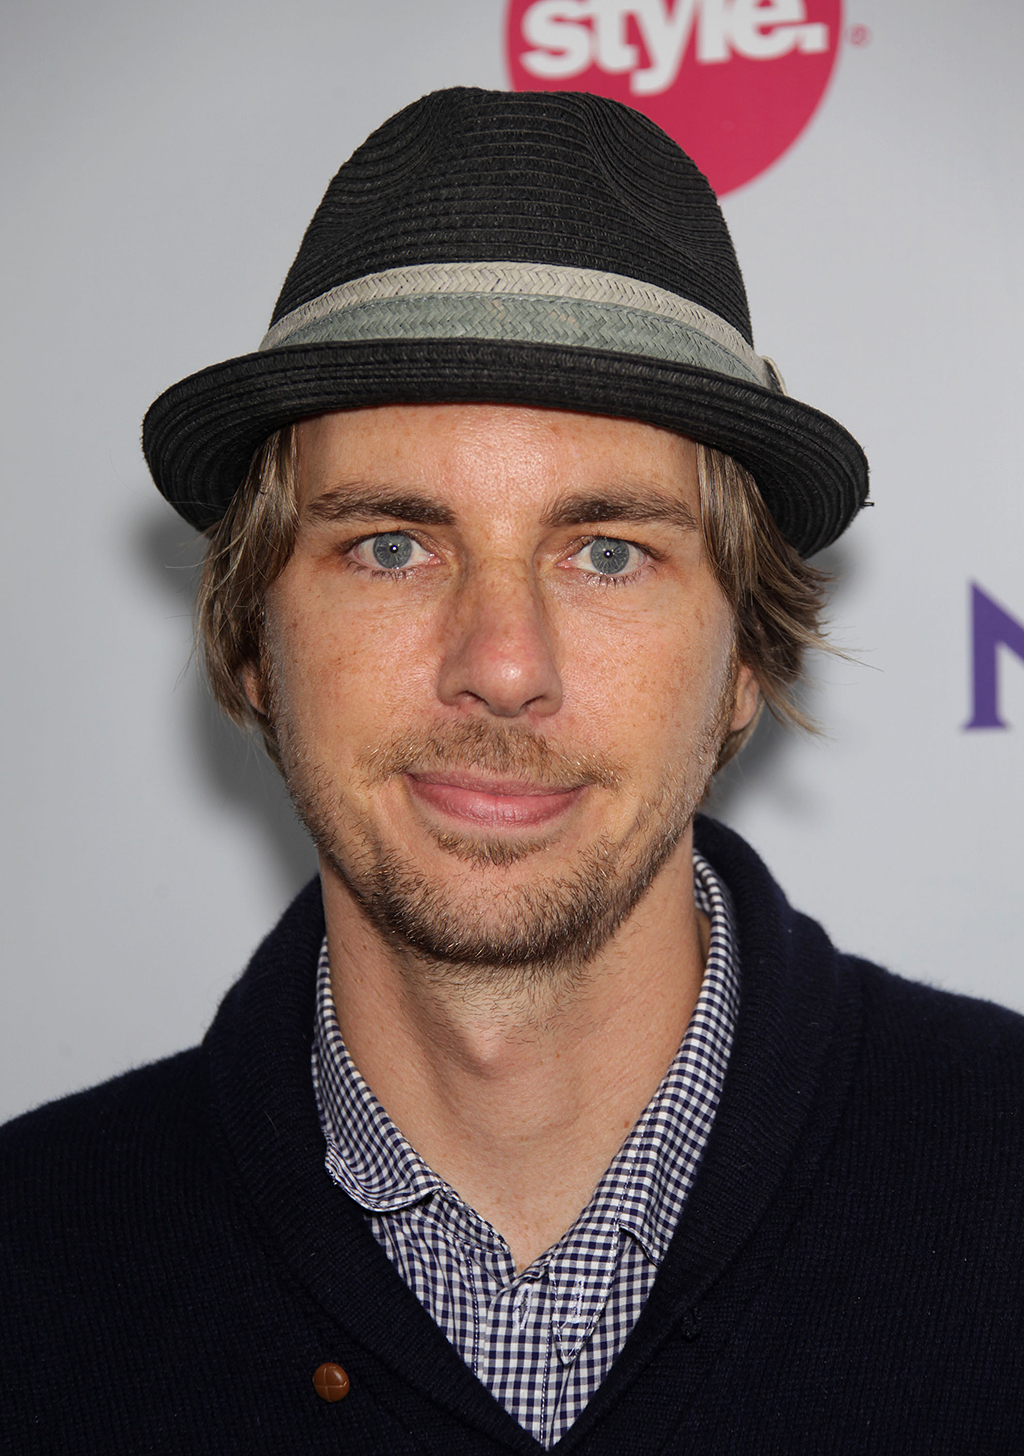 Dax Shepard Celebrities Who Got Their Start on Reality TV